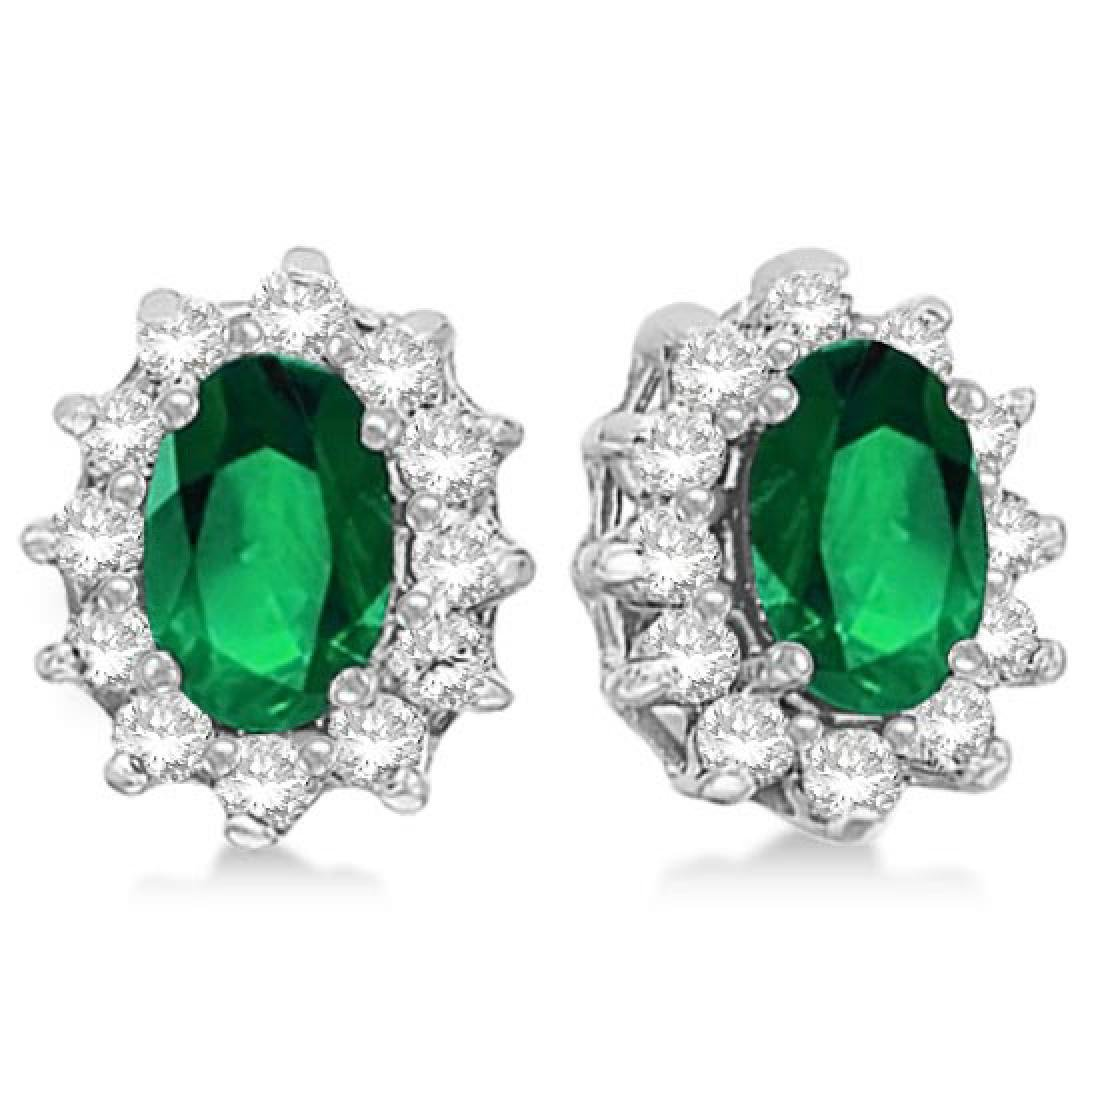 Oval Emerald and Diamond Accented Earrings 14k White Go